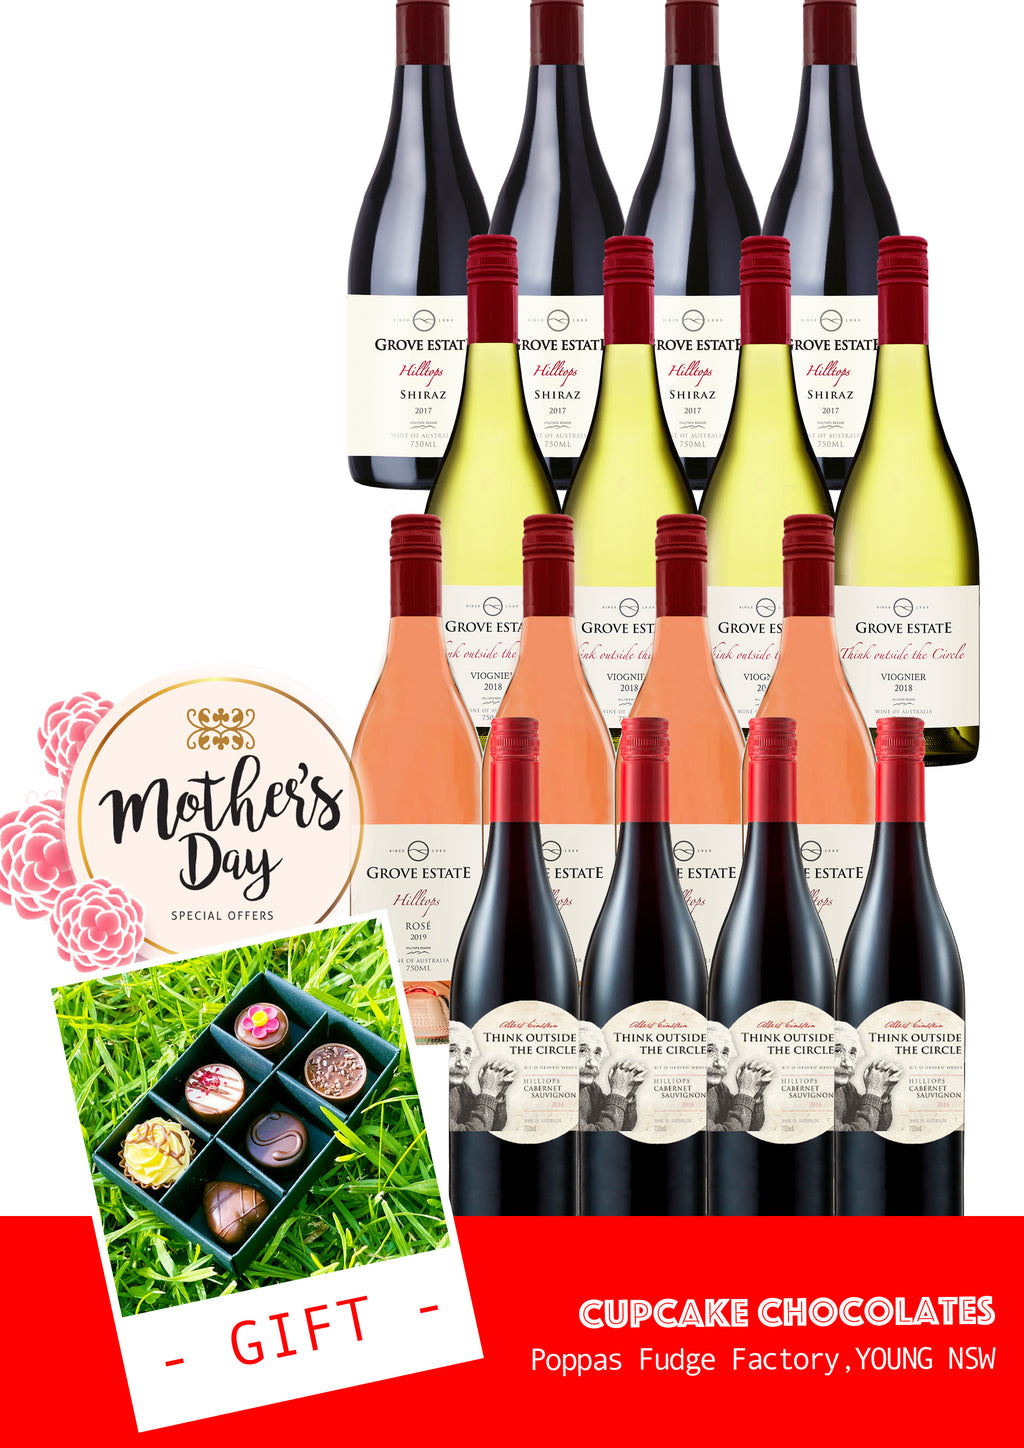 $175 Mothers' Day Mixed Case – plus a complementary gift from Poppa's Fudge Factory